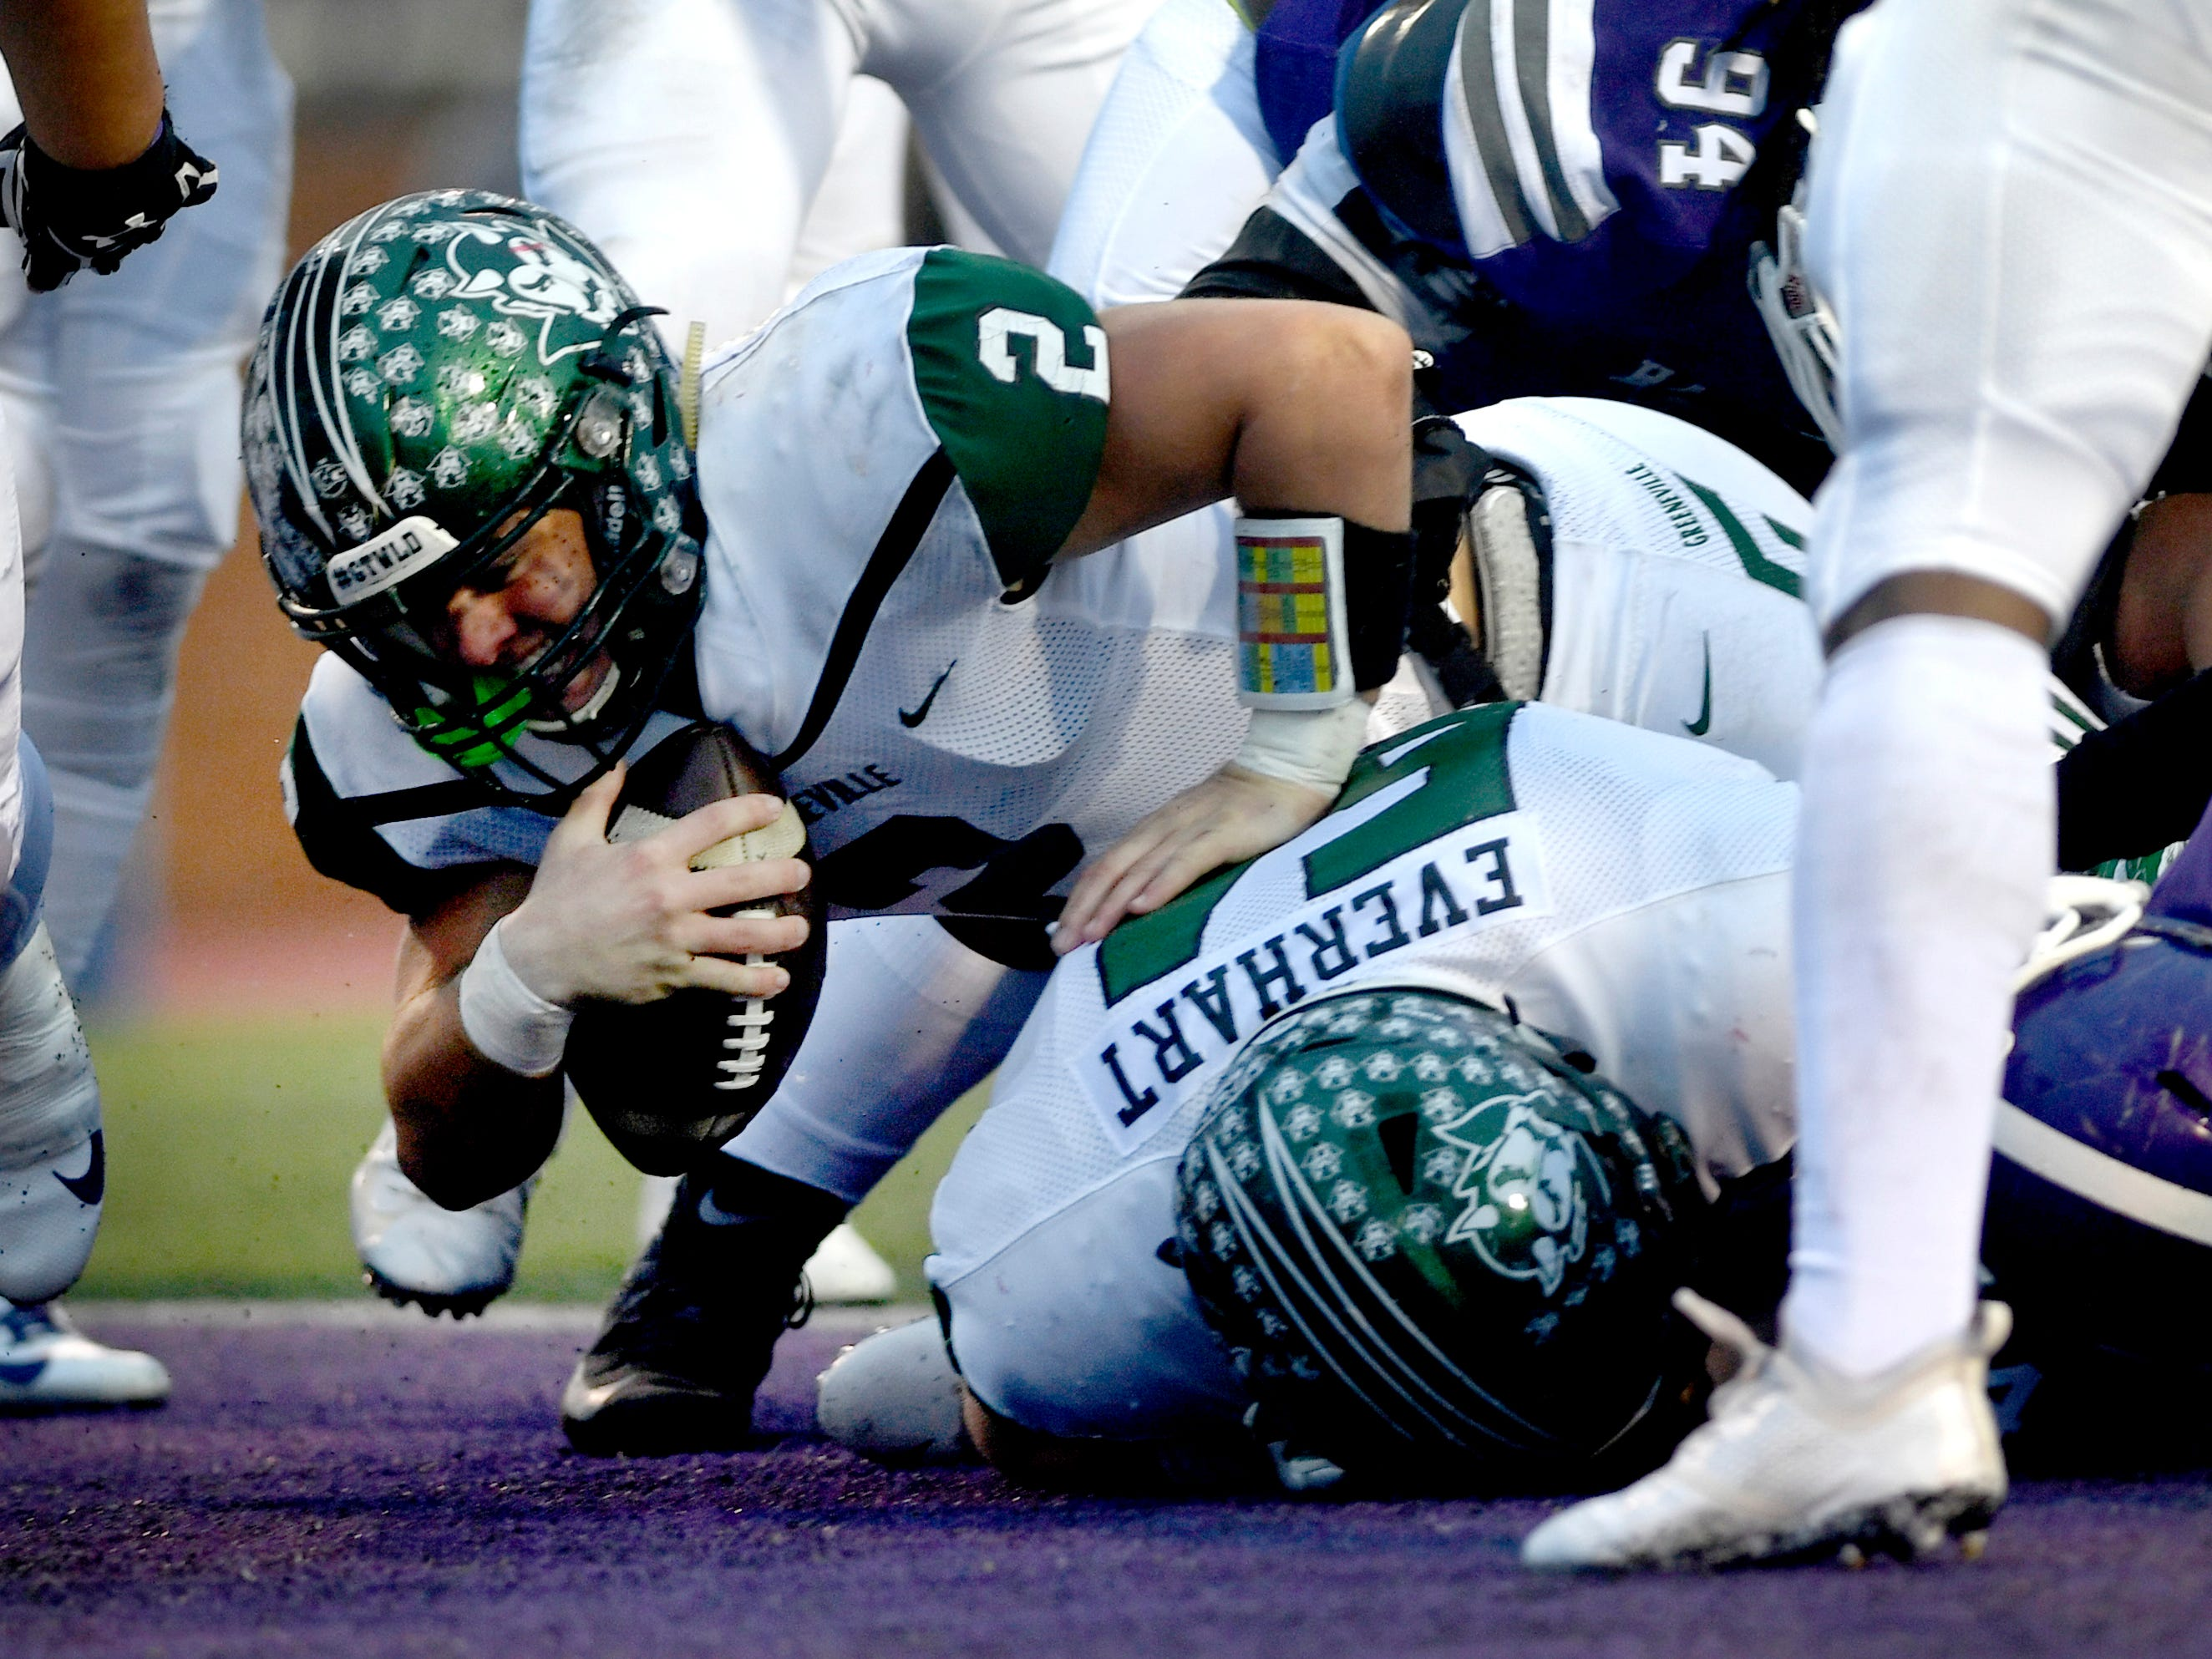 Greeneville's Cade Ballard (2) scores a touchdown against Haywood during the Class 4A BlueCross Bowl state championship Thursday, Nov. 29, 2018, at Tennessee Tech's Tucker Stadium in Cookeville, Tenn.